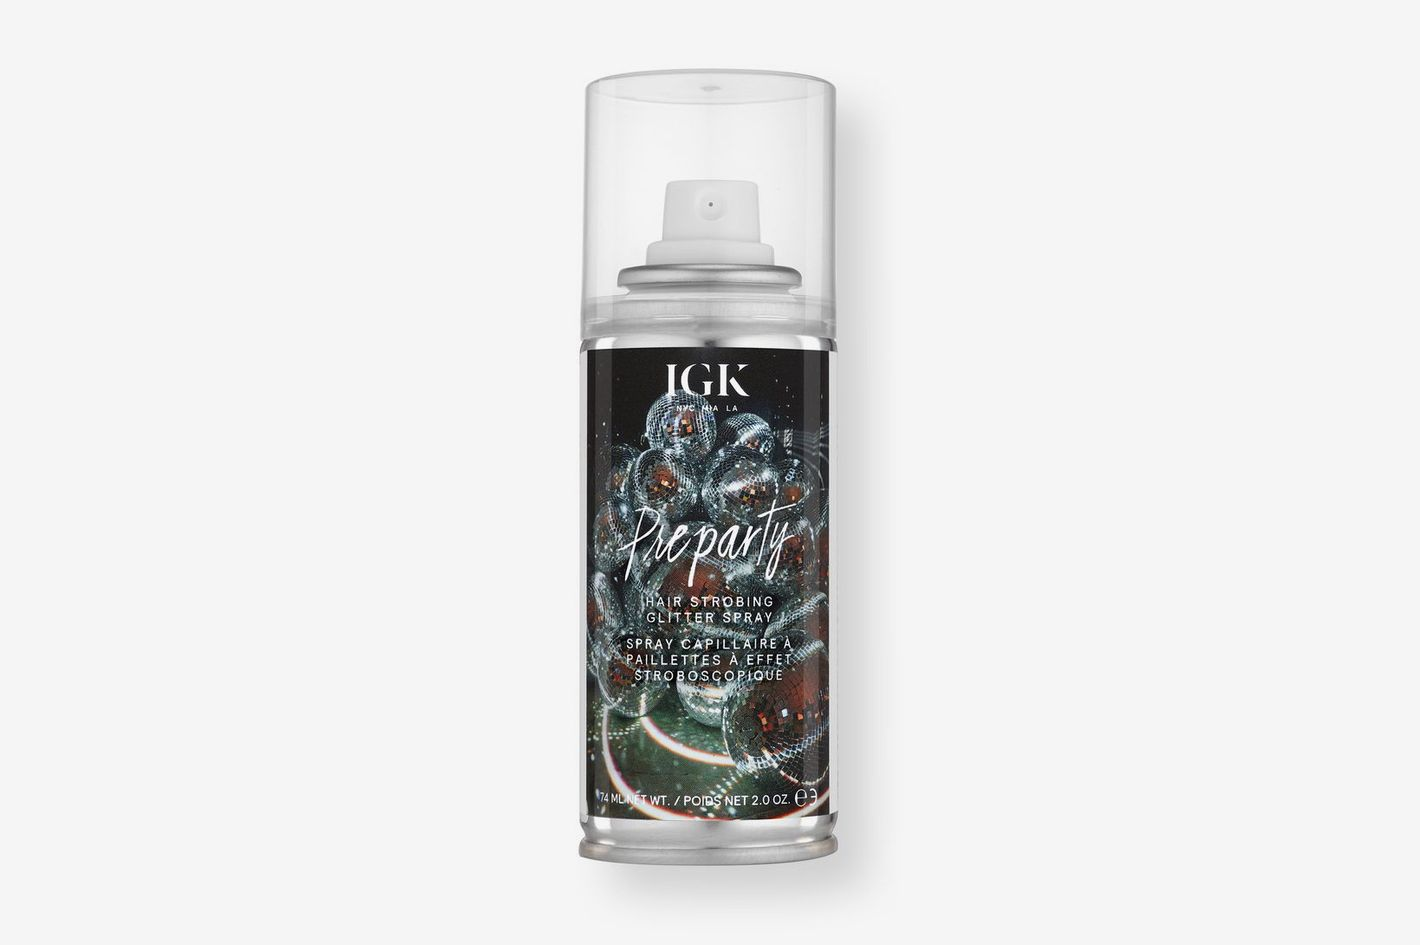 IGK Preparty Hair Strobing Glitter Spray